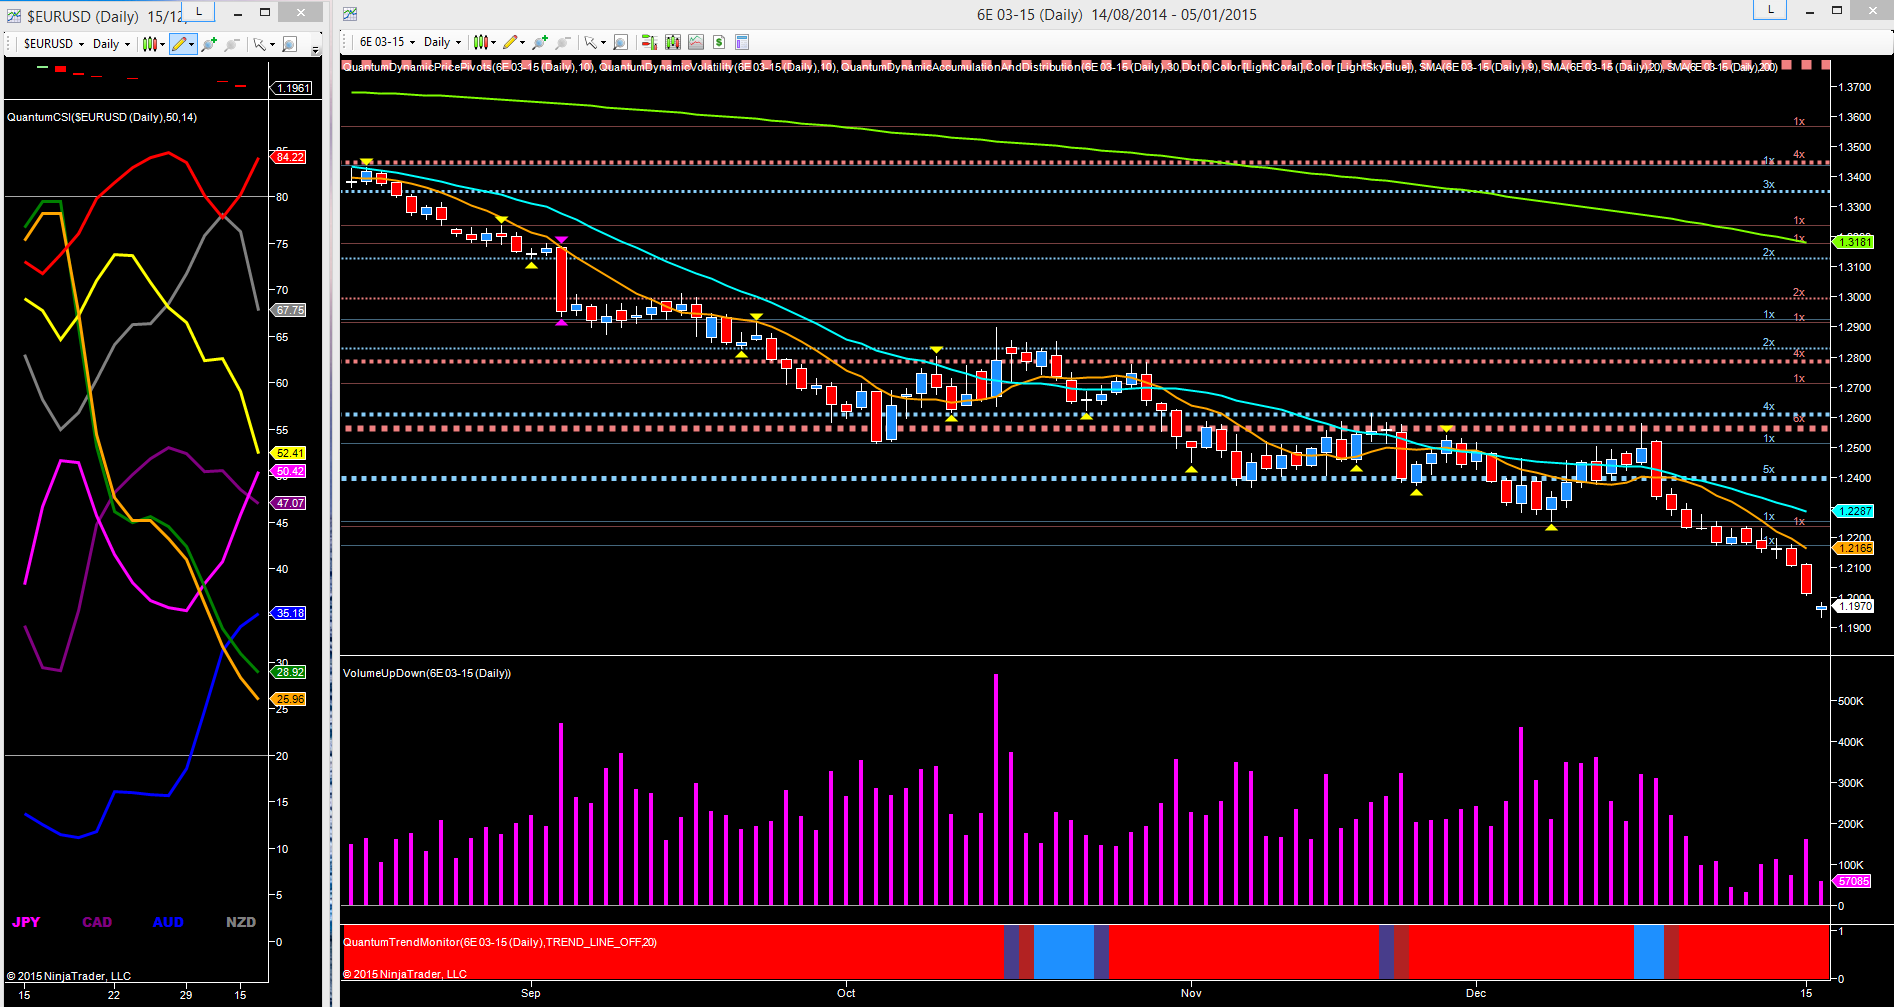 EUR/USD - daily futures chart